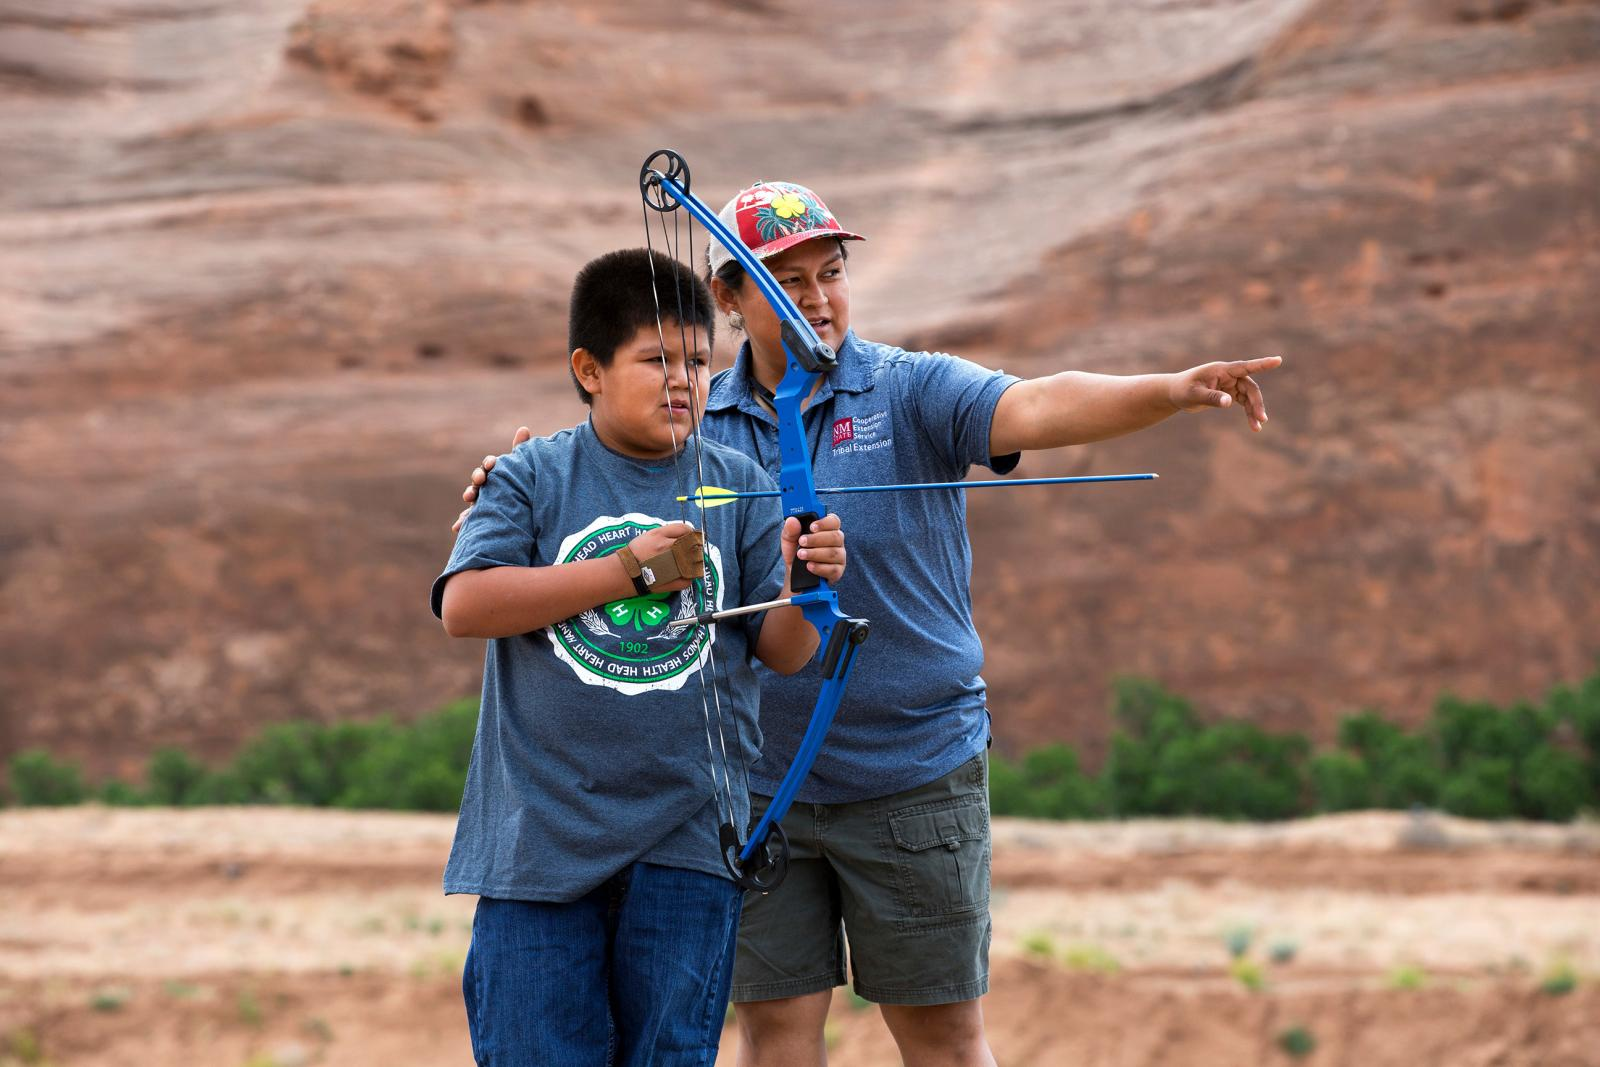 4-H volunteer helping youth with archery